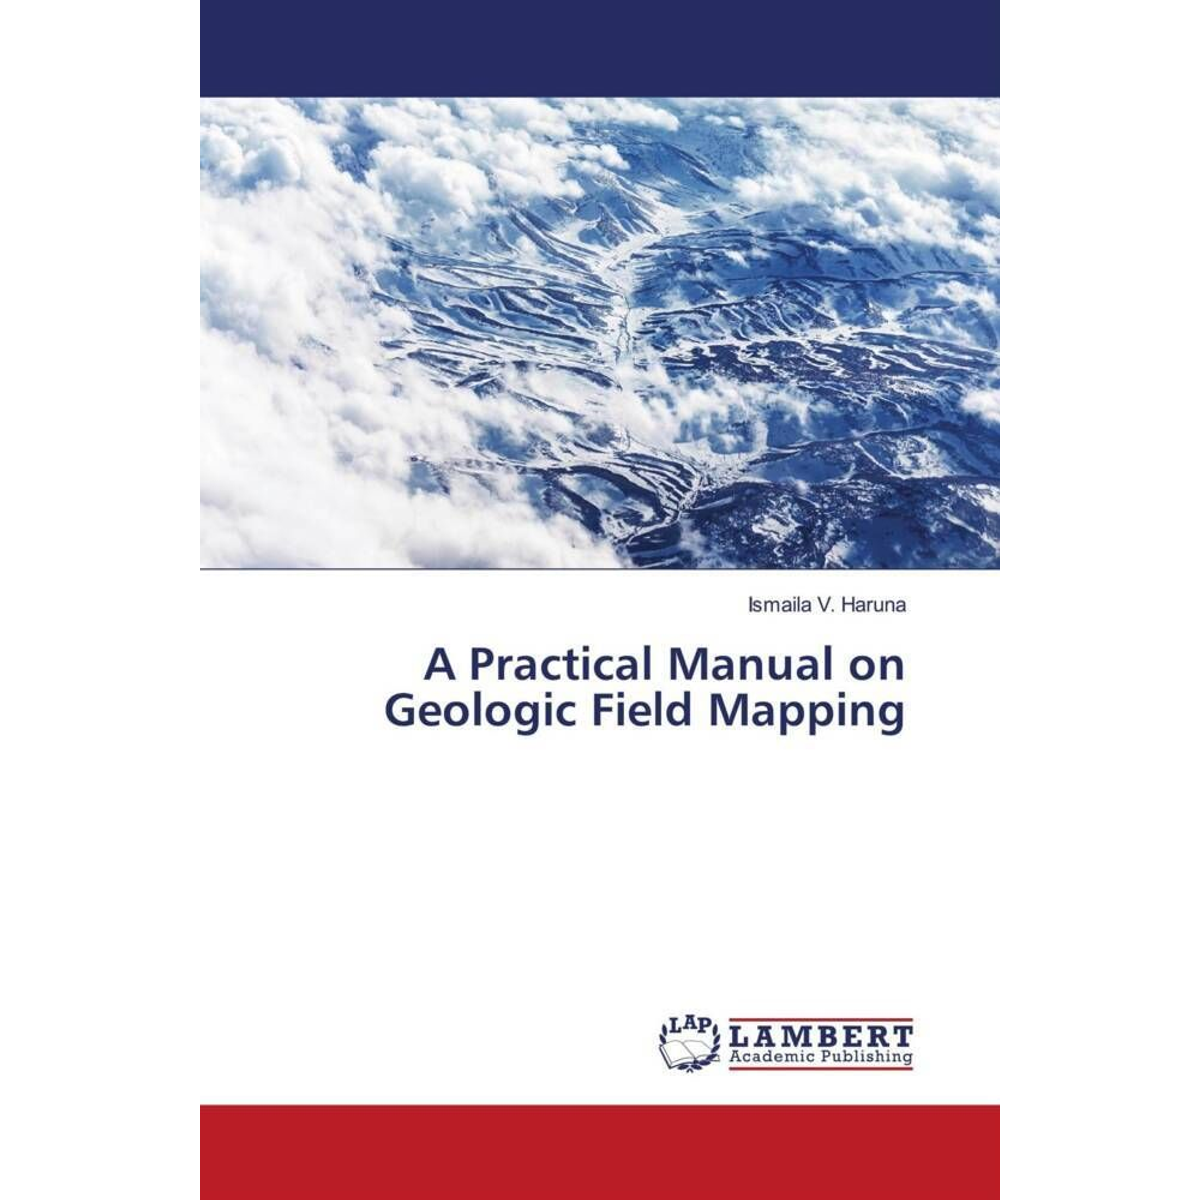 A Practical Manual on Geologic Field Mapping